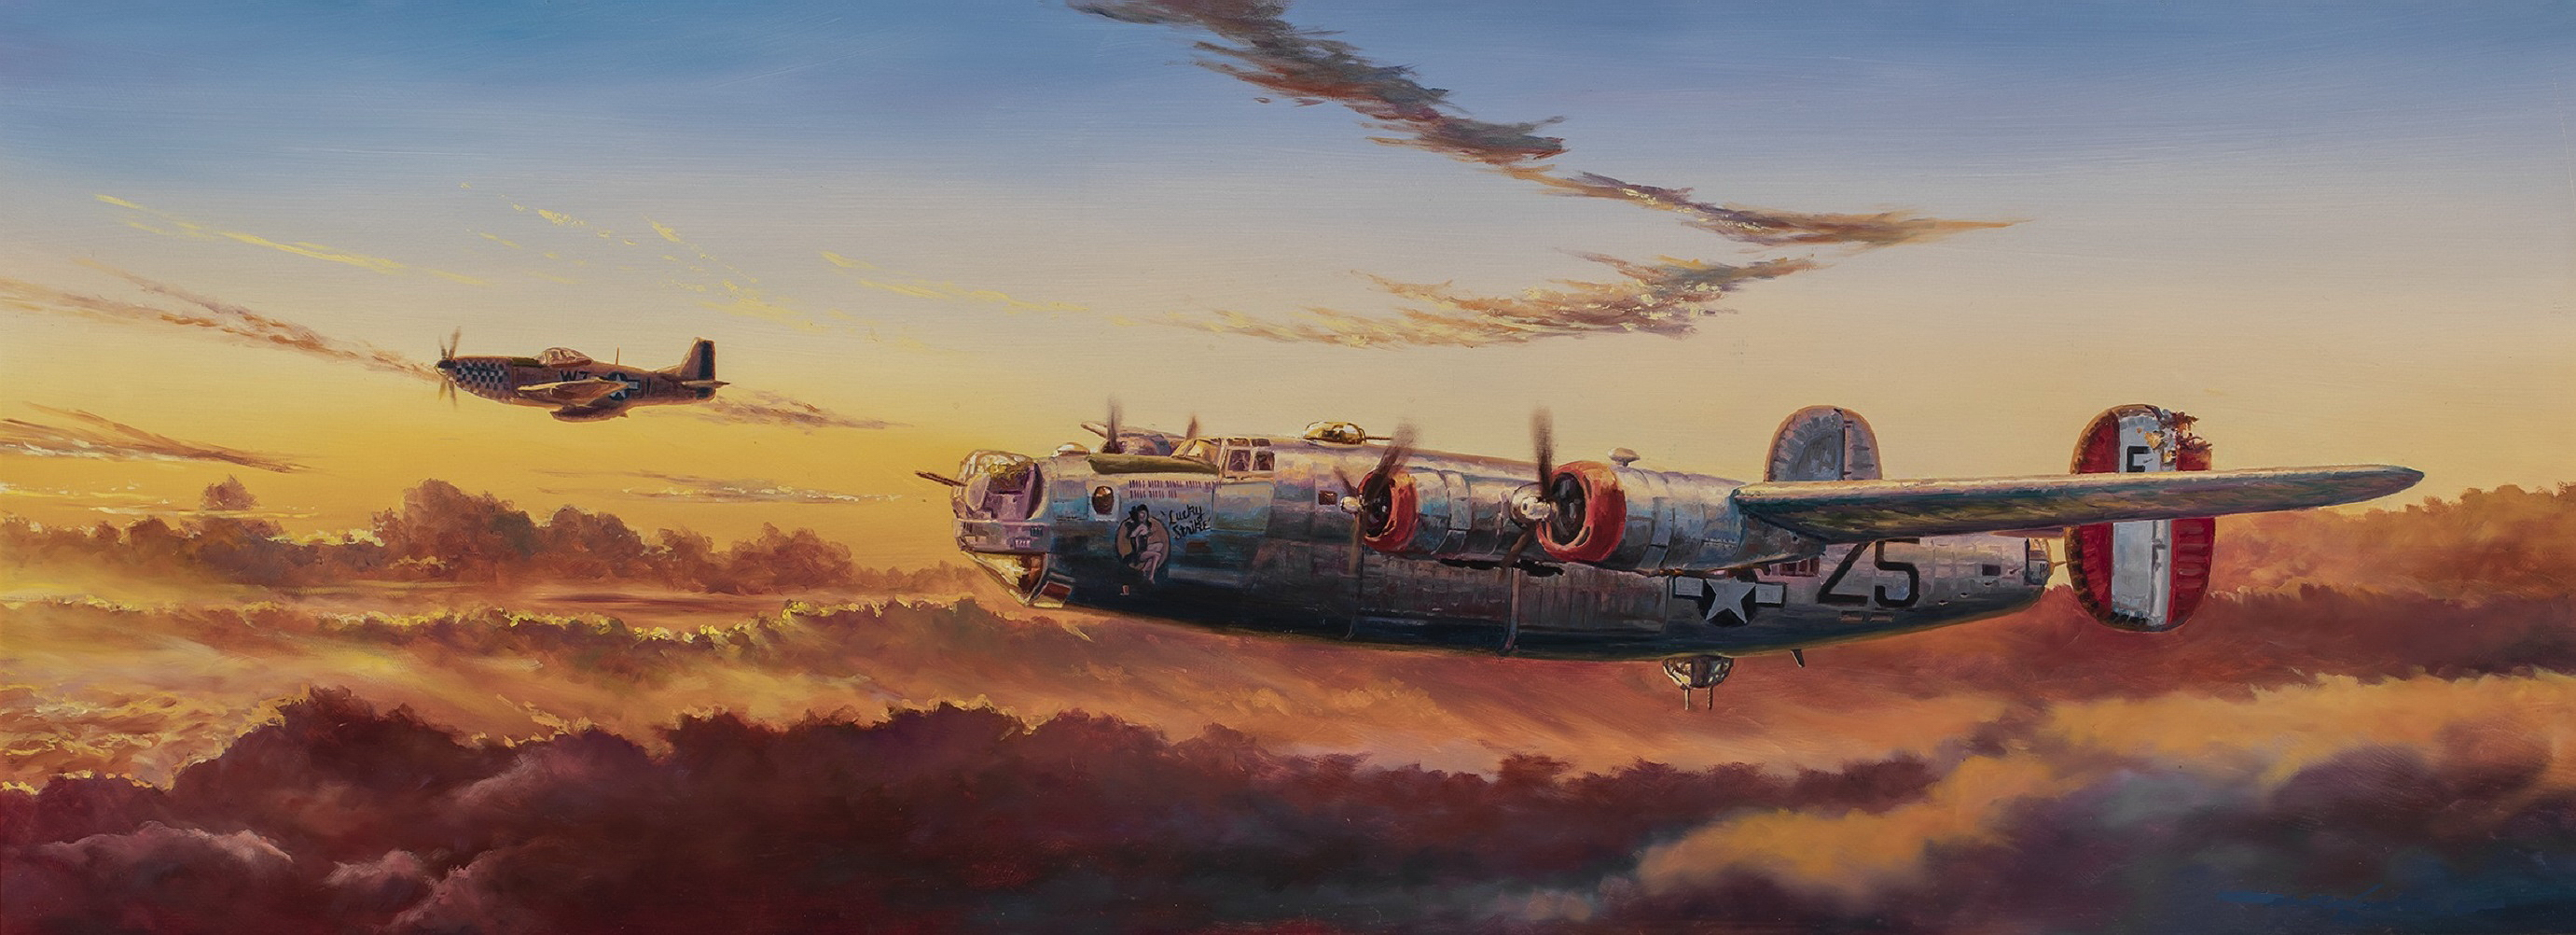 2762x1002 - Consolidated B-24 Liberator Wallpapers 31